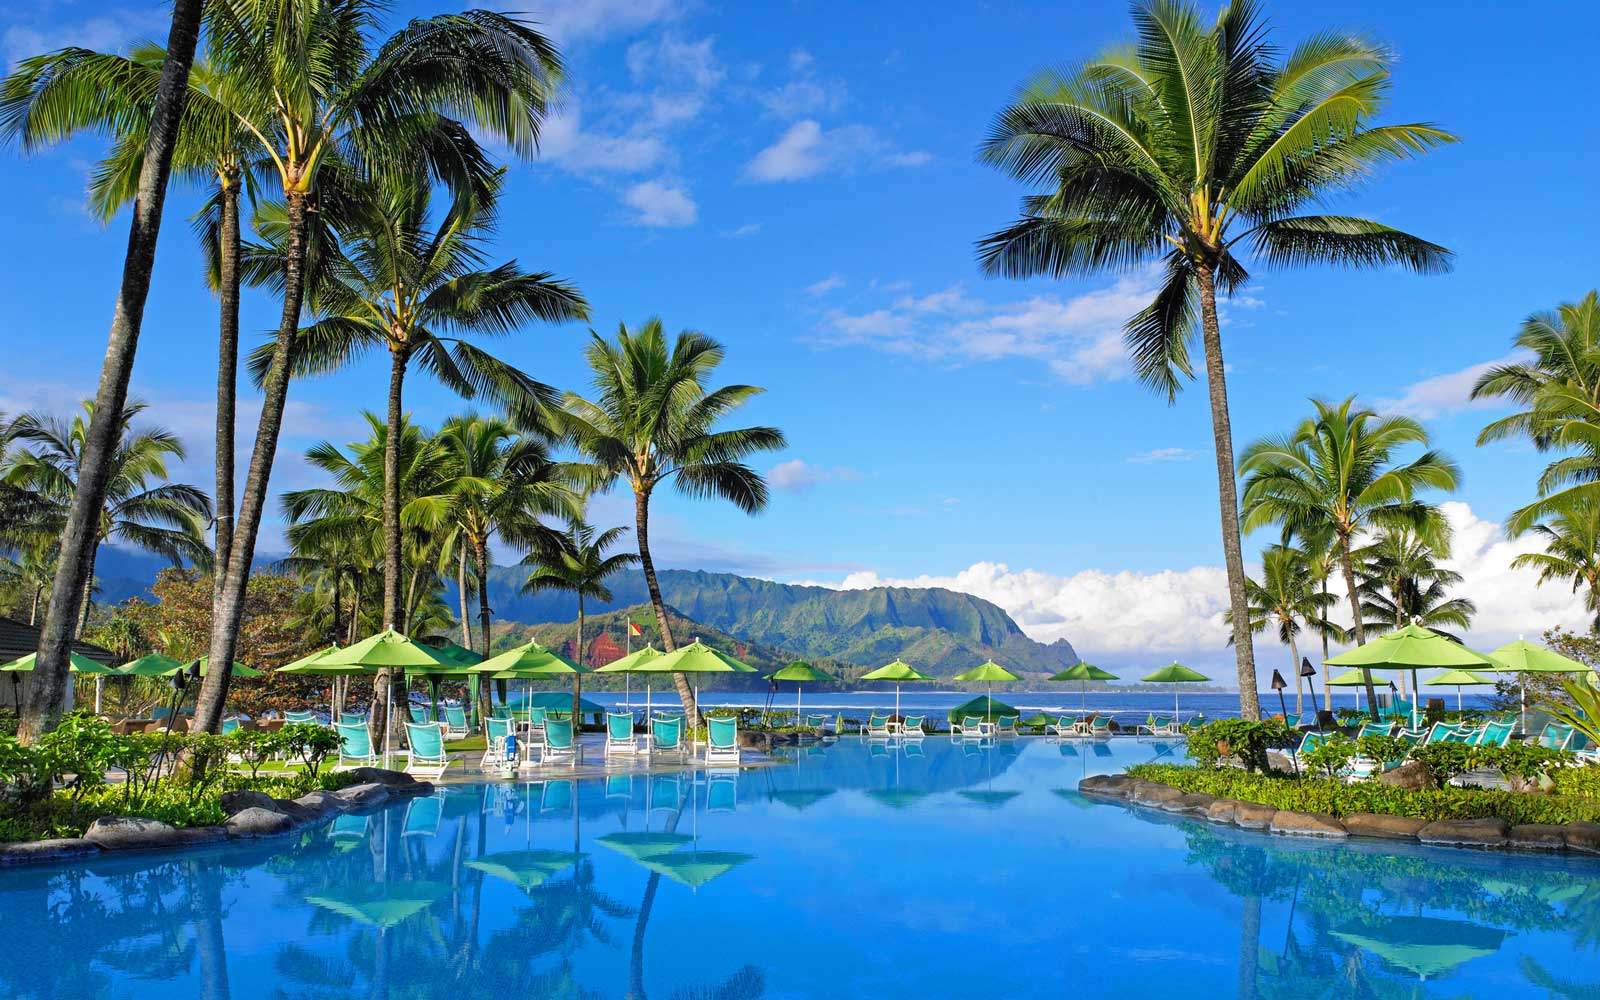 The St. Regis Princeville Resort, Jurassic Park